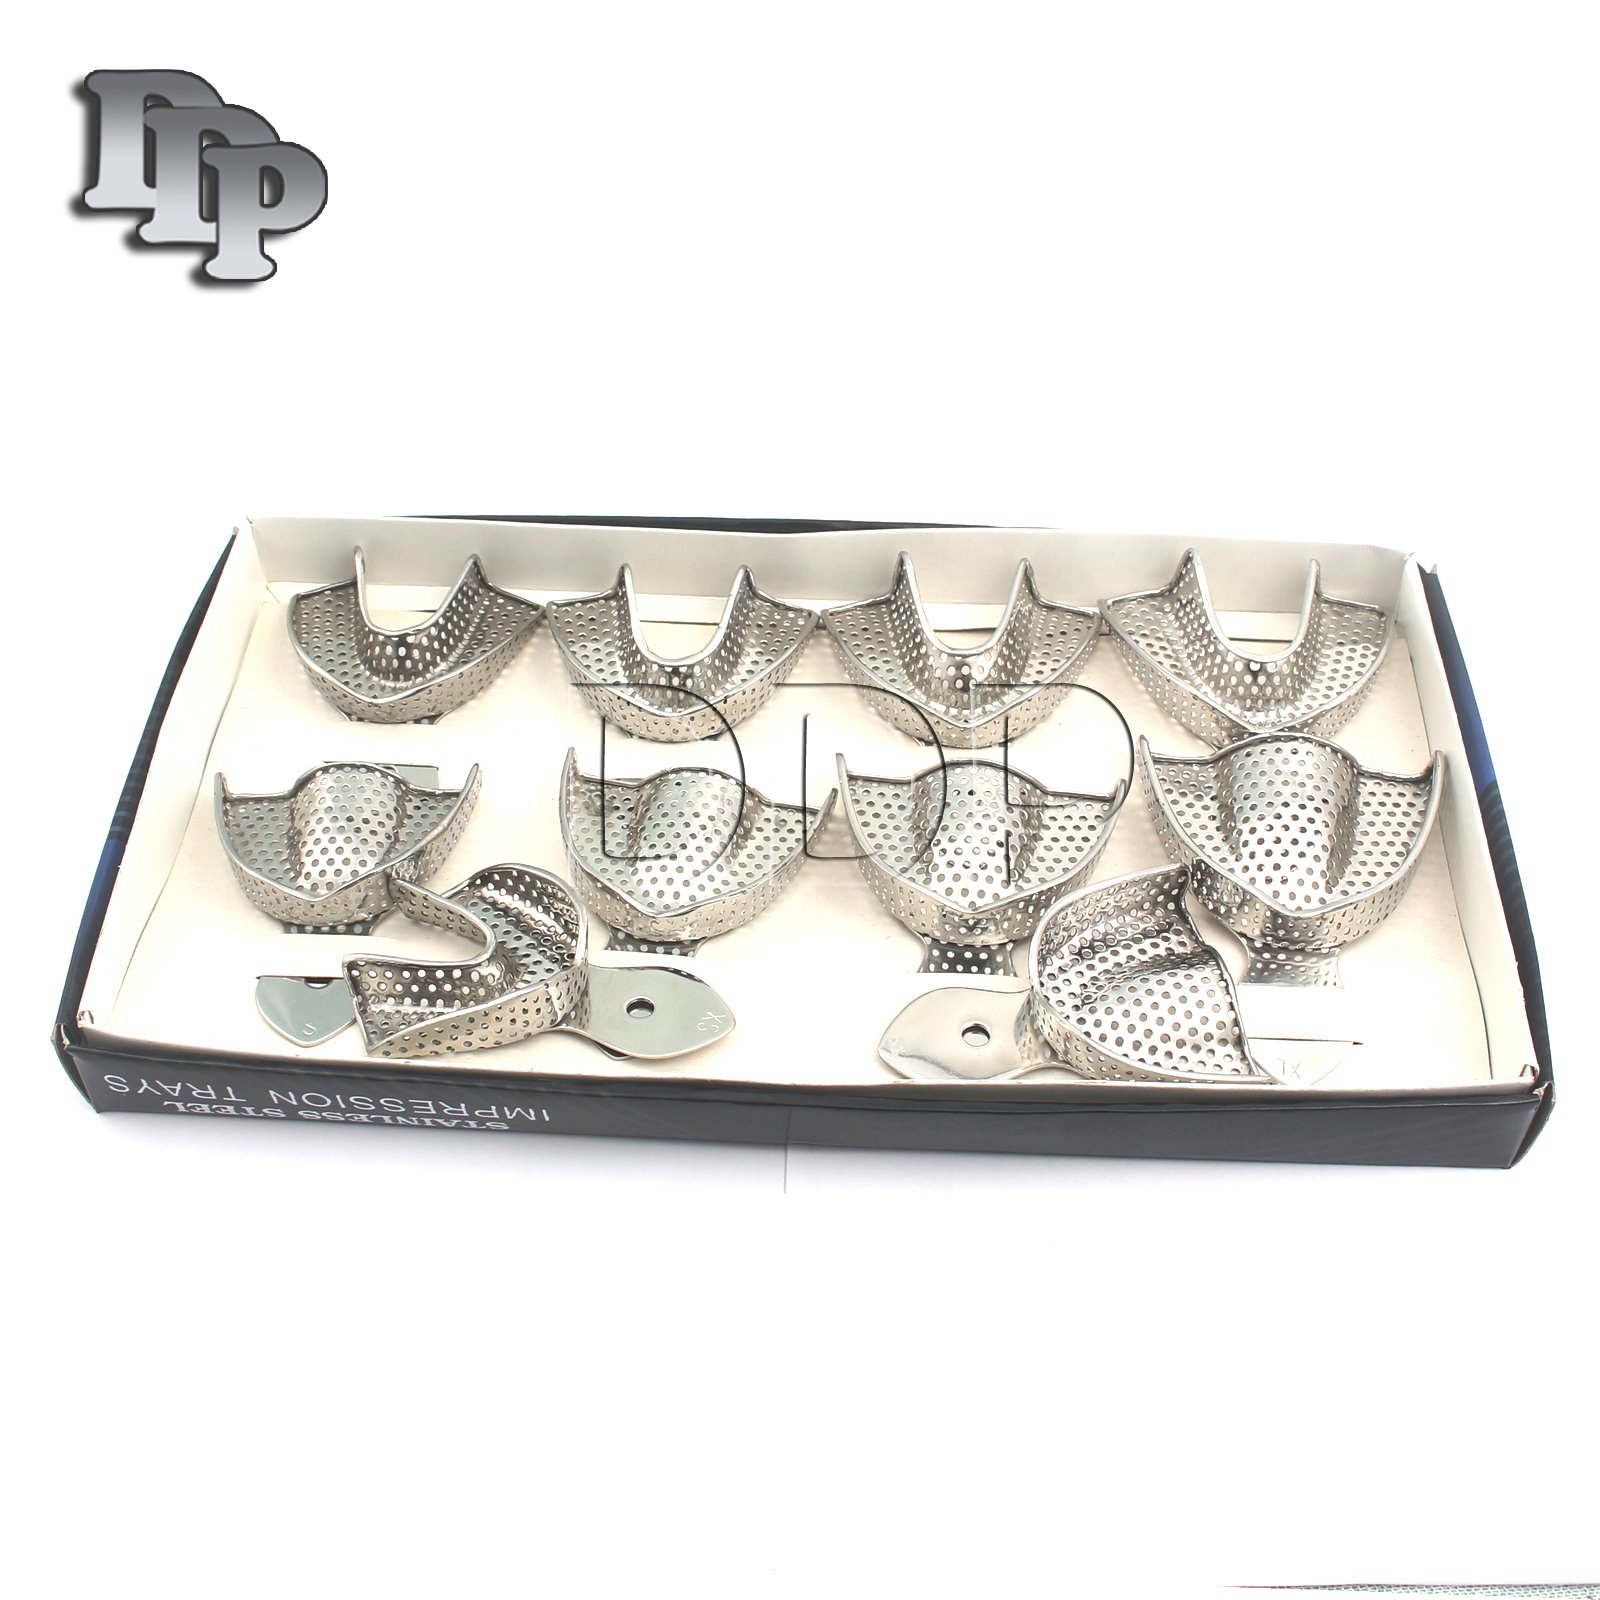 DDP 10 DENTAL IMPRESSION TRAYS SET PERFO DENTURE INSTRUMENTS